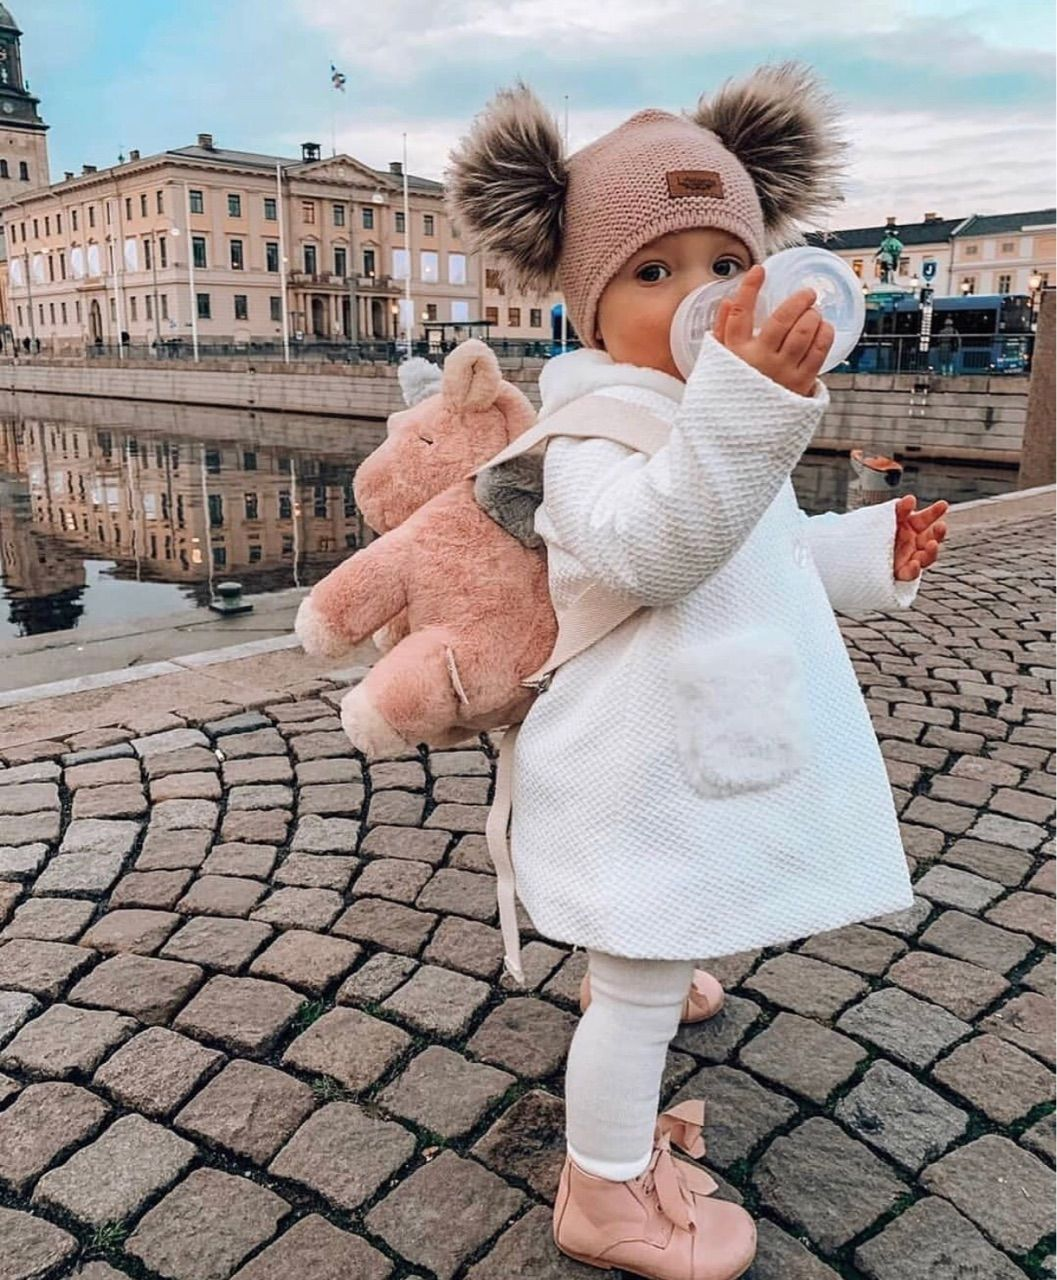 Image about cute in city 🌇 🏛 🌃 🌉 by 𝑁𝑢𝑢𝑟♕ on We He